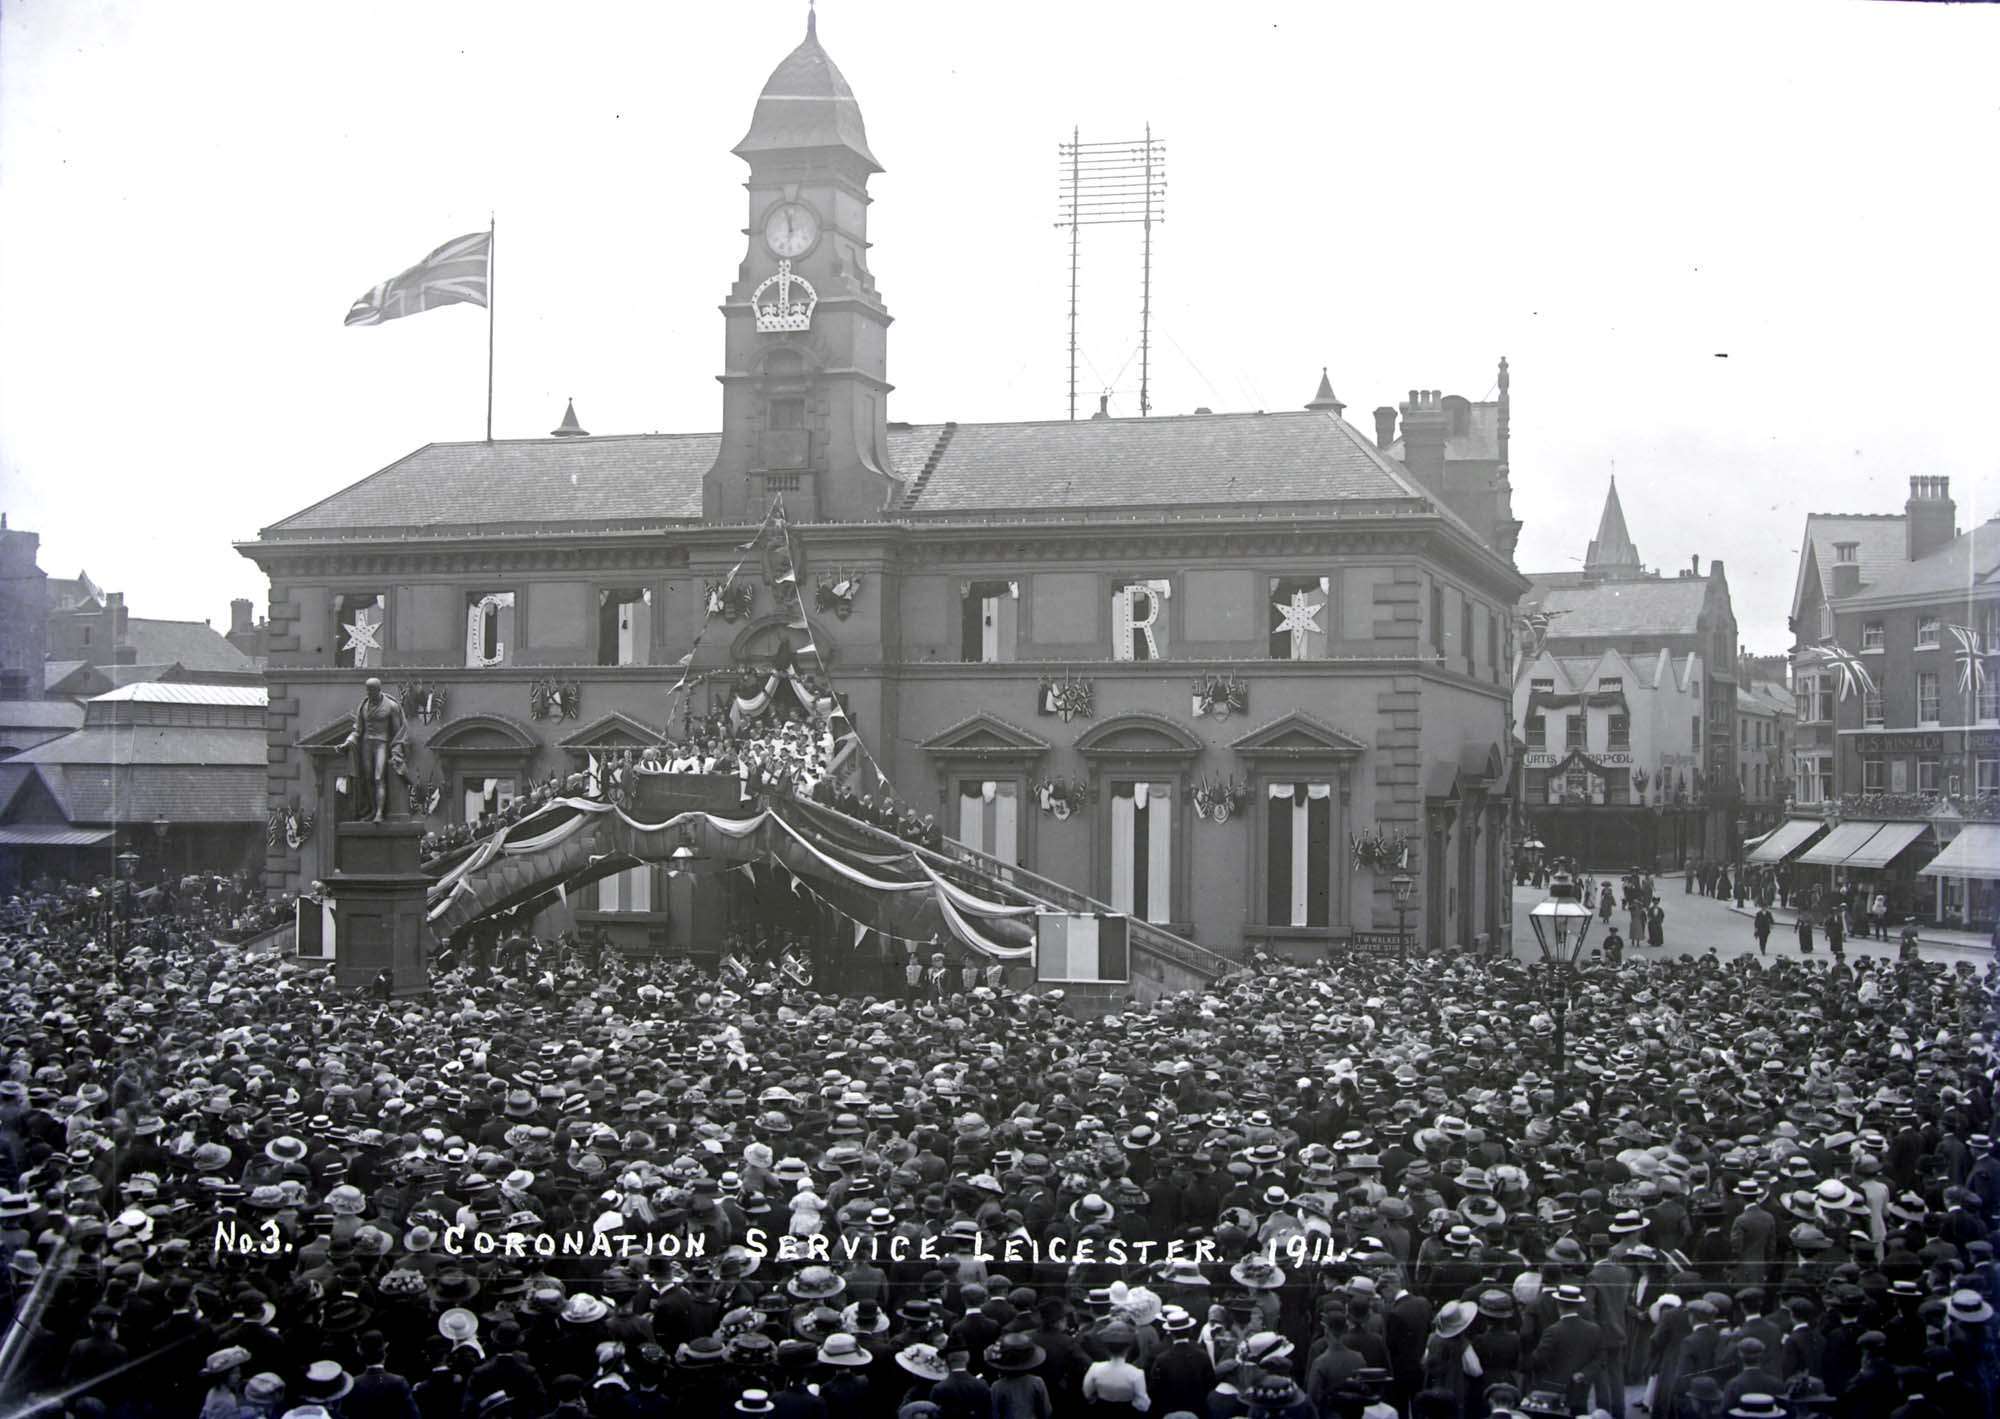 Huge crowds in Market Place celebrating the coronation of King George V and Queen Mary on 22 June 1911 - Leicestershire Record Office